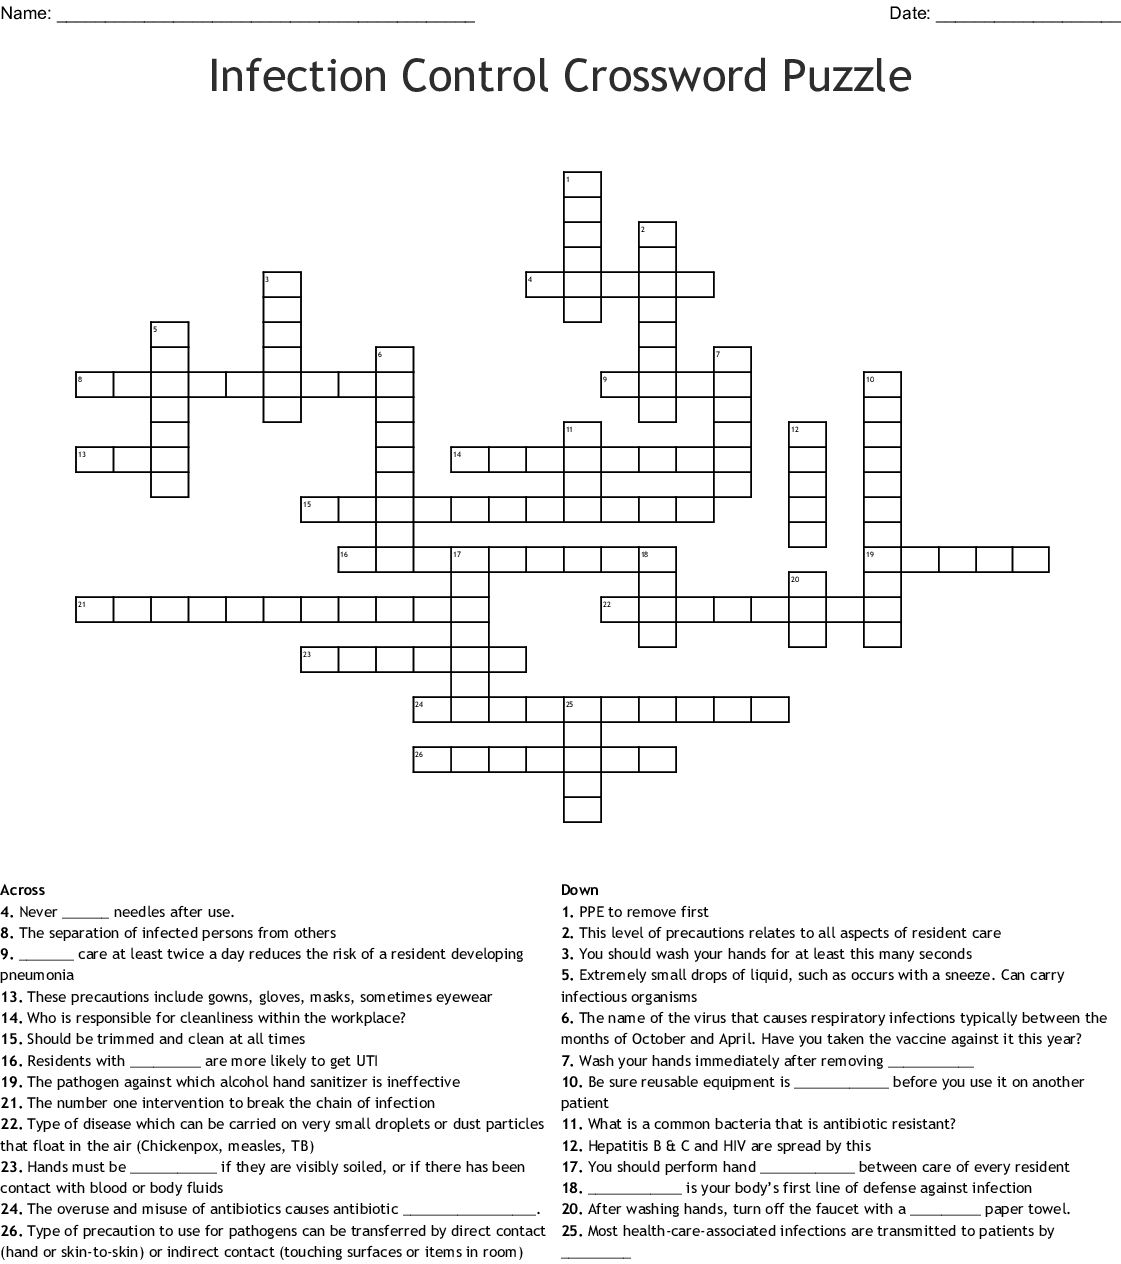 Malignant Hyperthermia Crossword